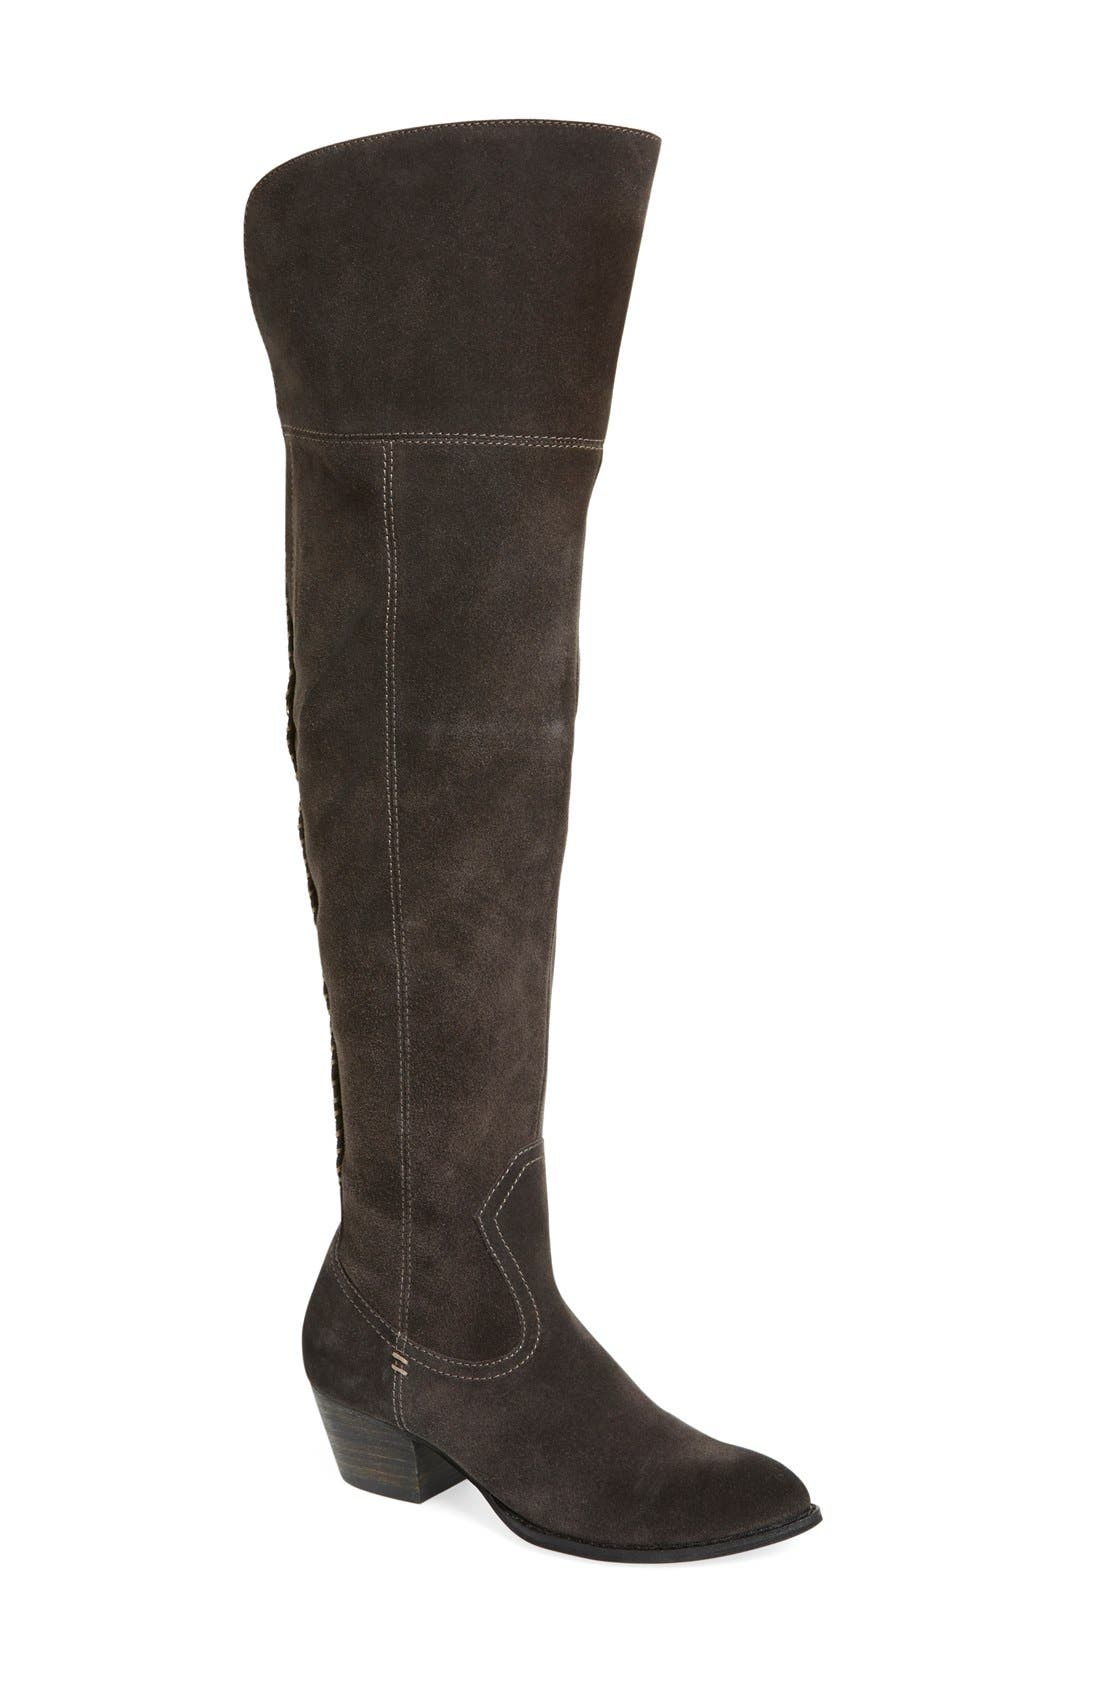 Alternate Image 1 Selected - Dolce Vita 'Silas' Over the Knee Boot (Women)